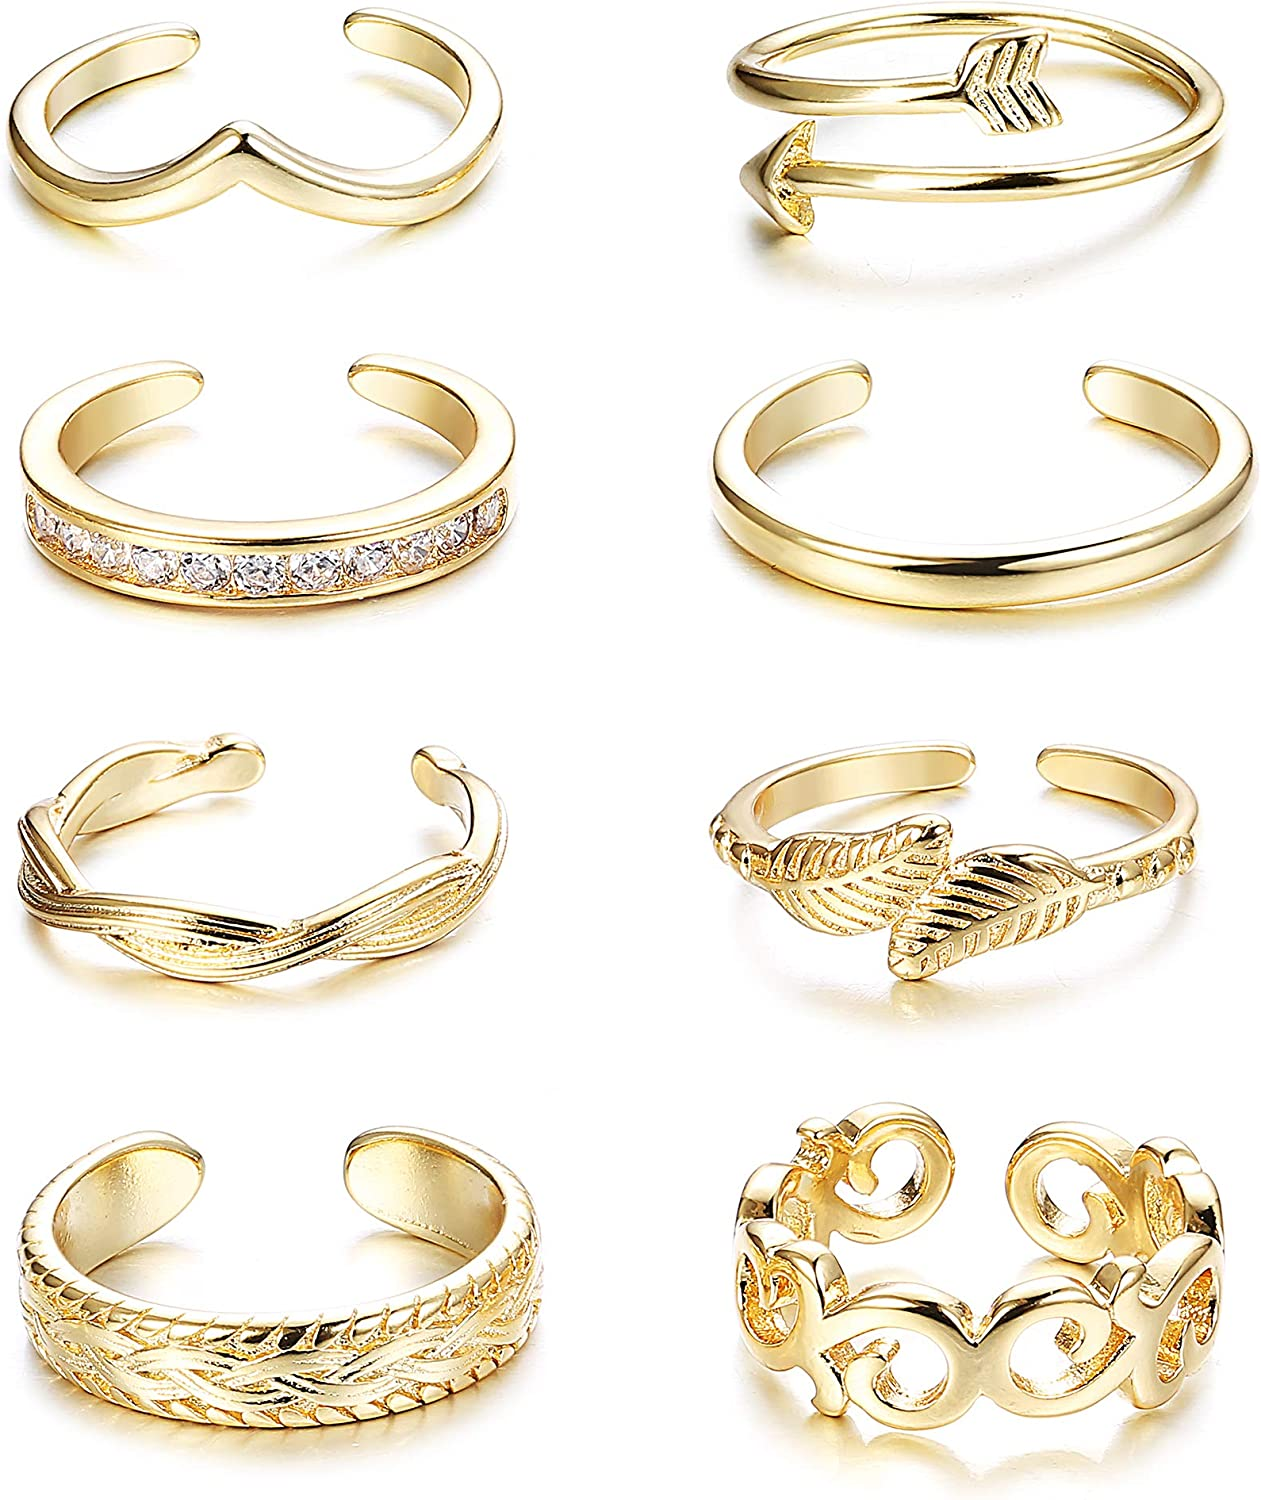 FINREZIO 8PCS Adjustable Toe Ring for Women Girls Open Tail Ring Flower Knot Simple Toe Ring Gifts Jewelry Set…